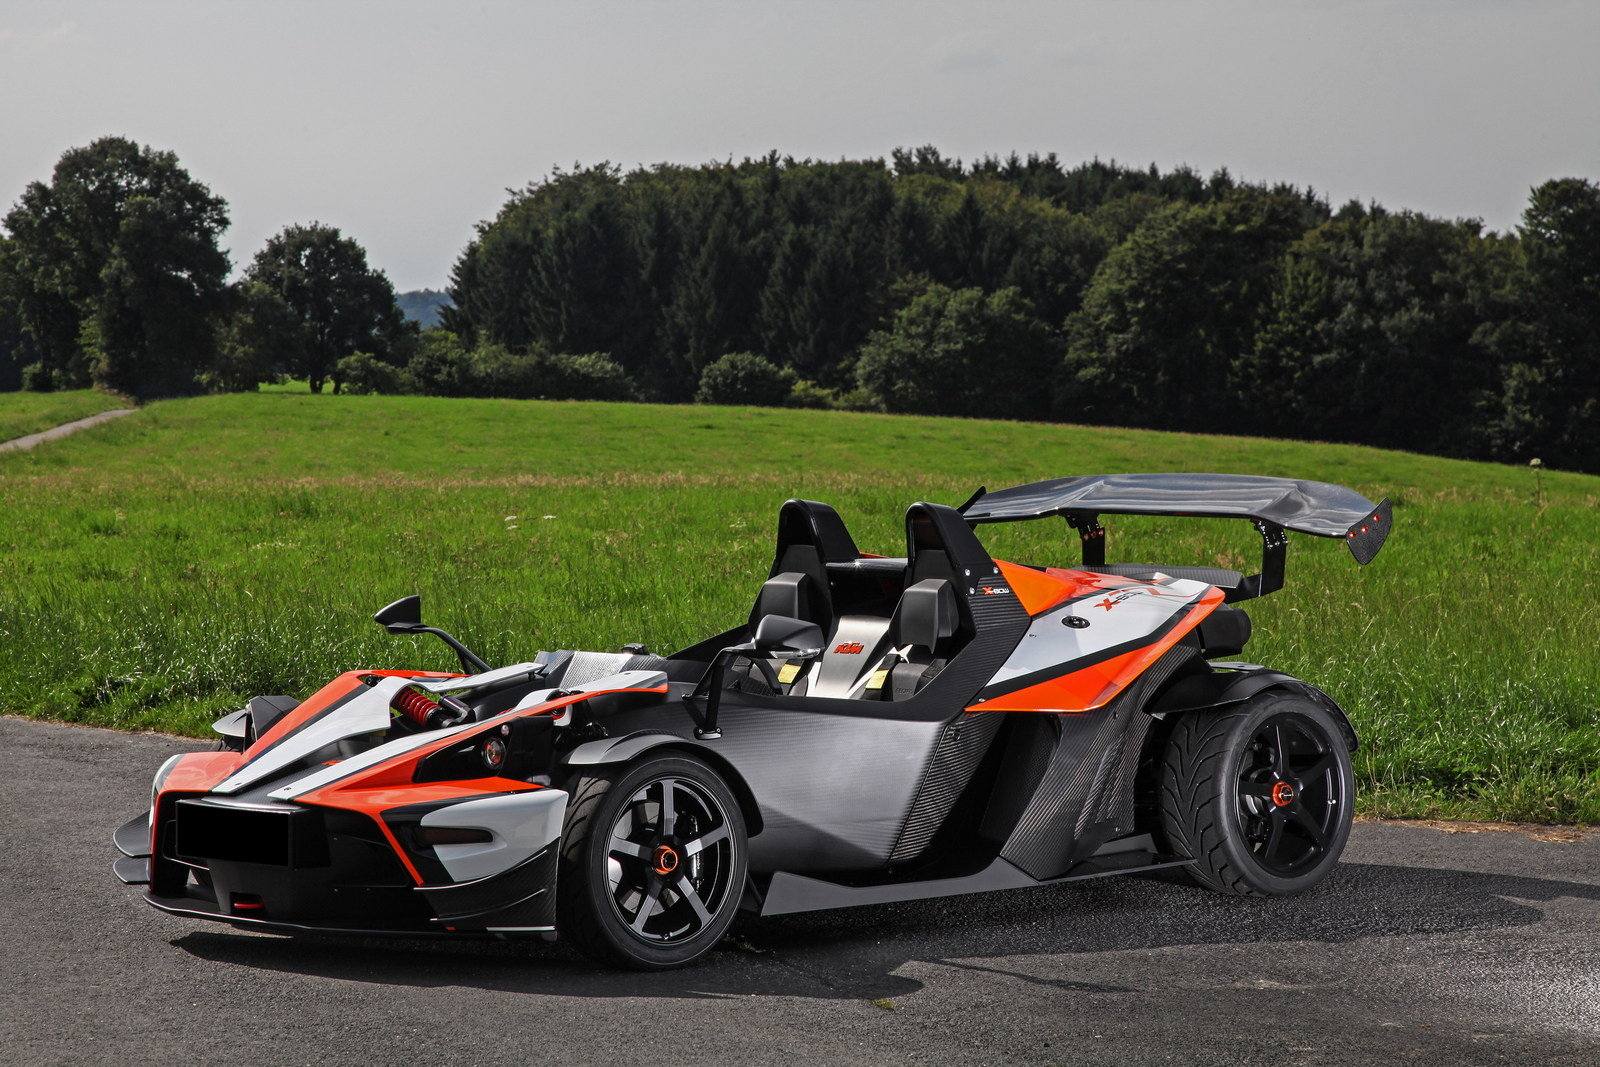 2015 Ktm Xbow R By Wimmer Rst Picture 655918 Car